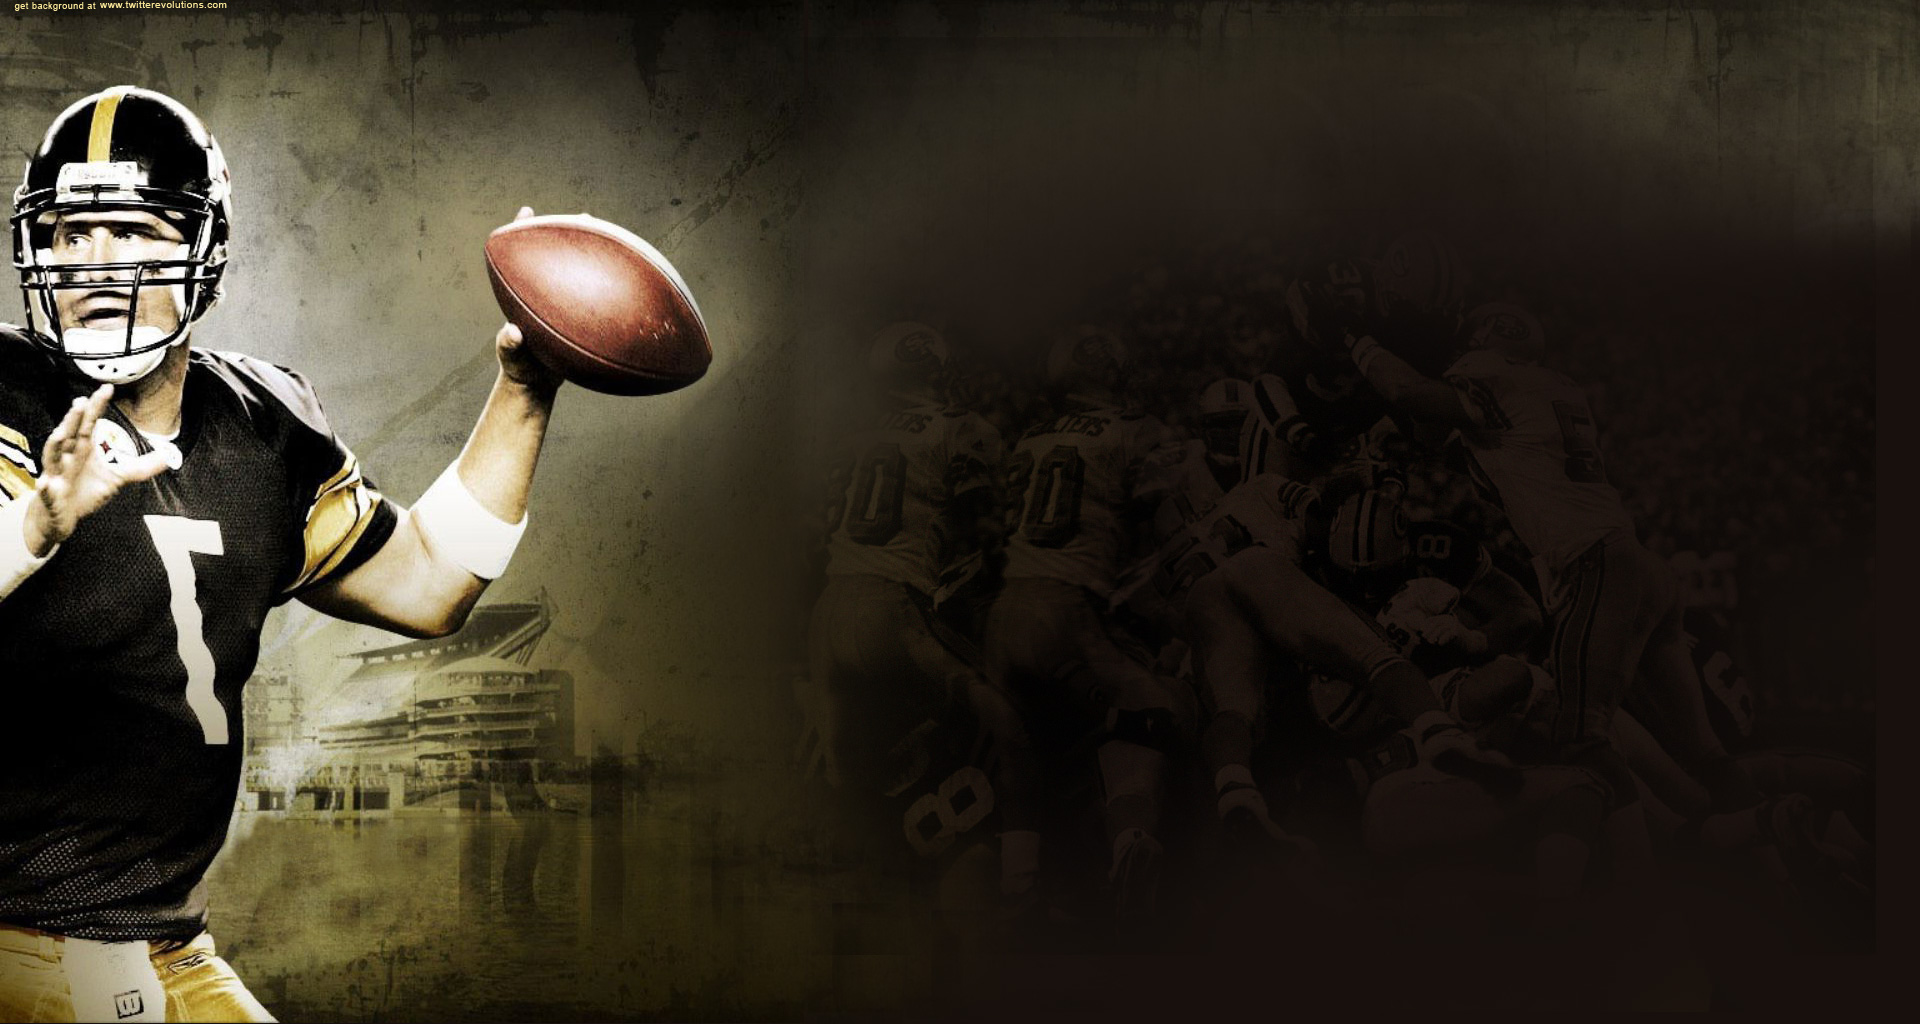 American Football Backgrounds hd images 1920x1024